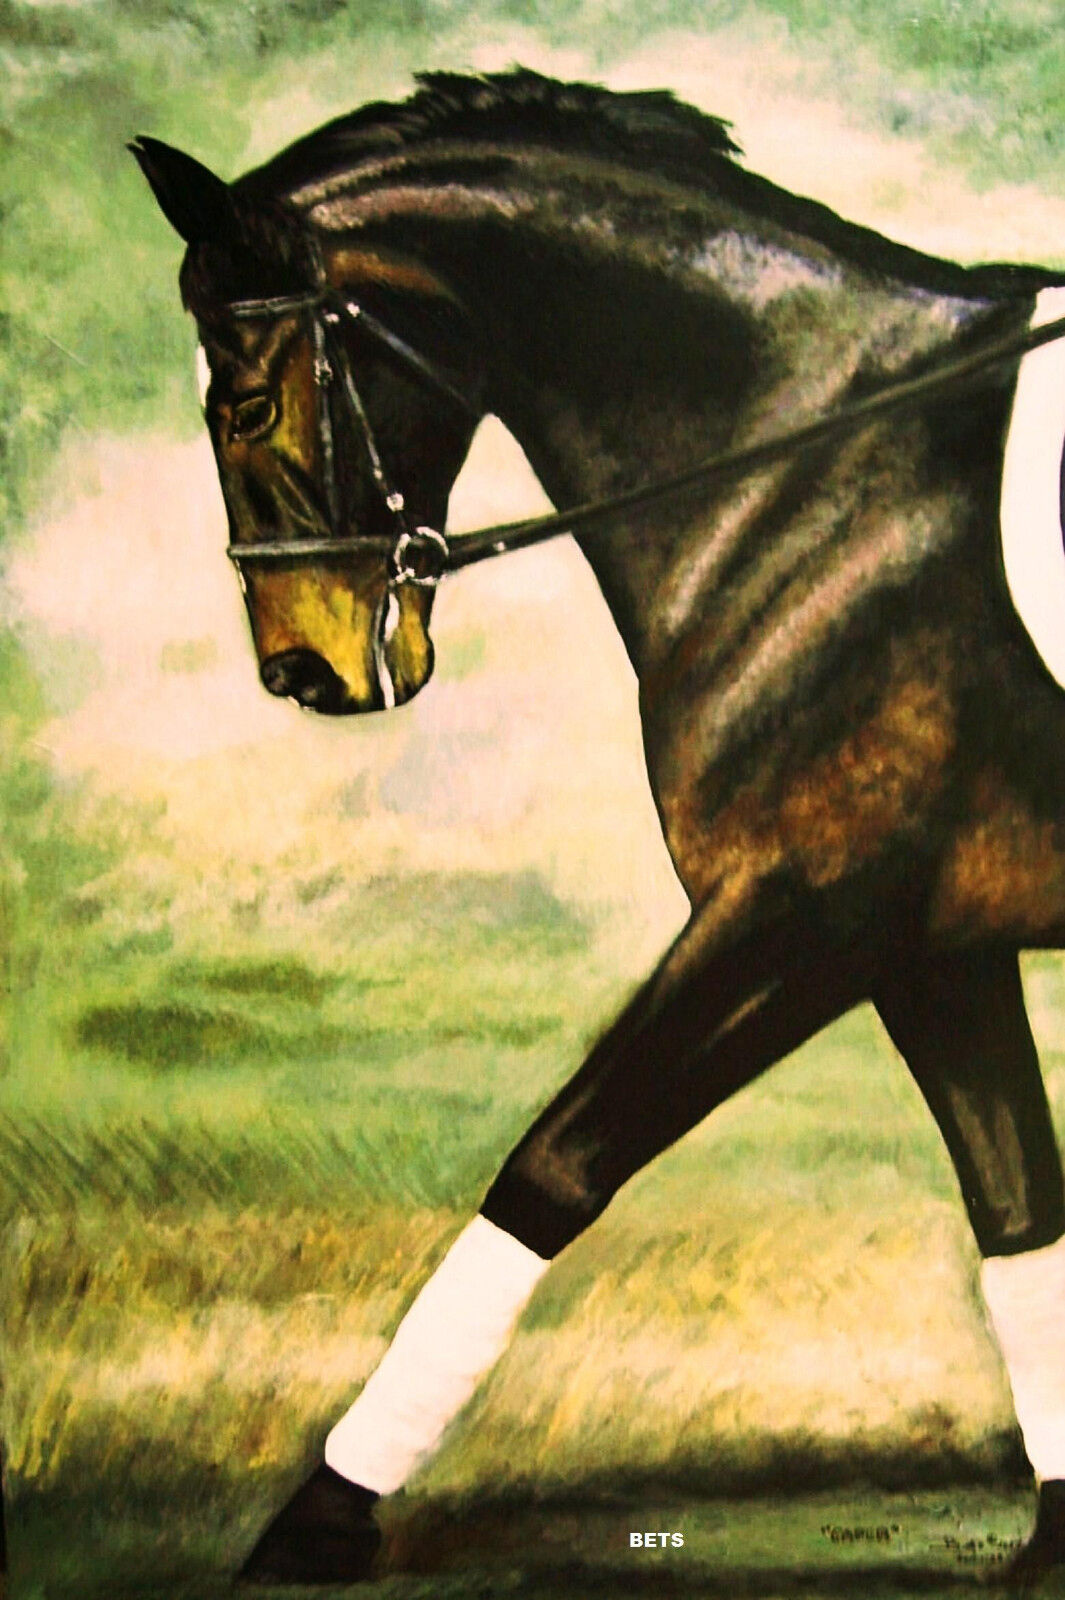 HORSE PRINT Giclee DRESSAGE Art CAPER by artist BETS  5 COLORS print size 14 X 19  famous brand